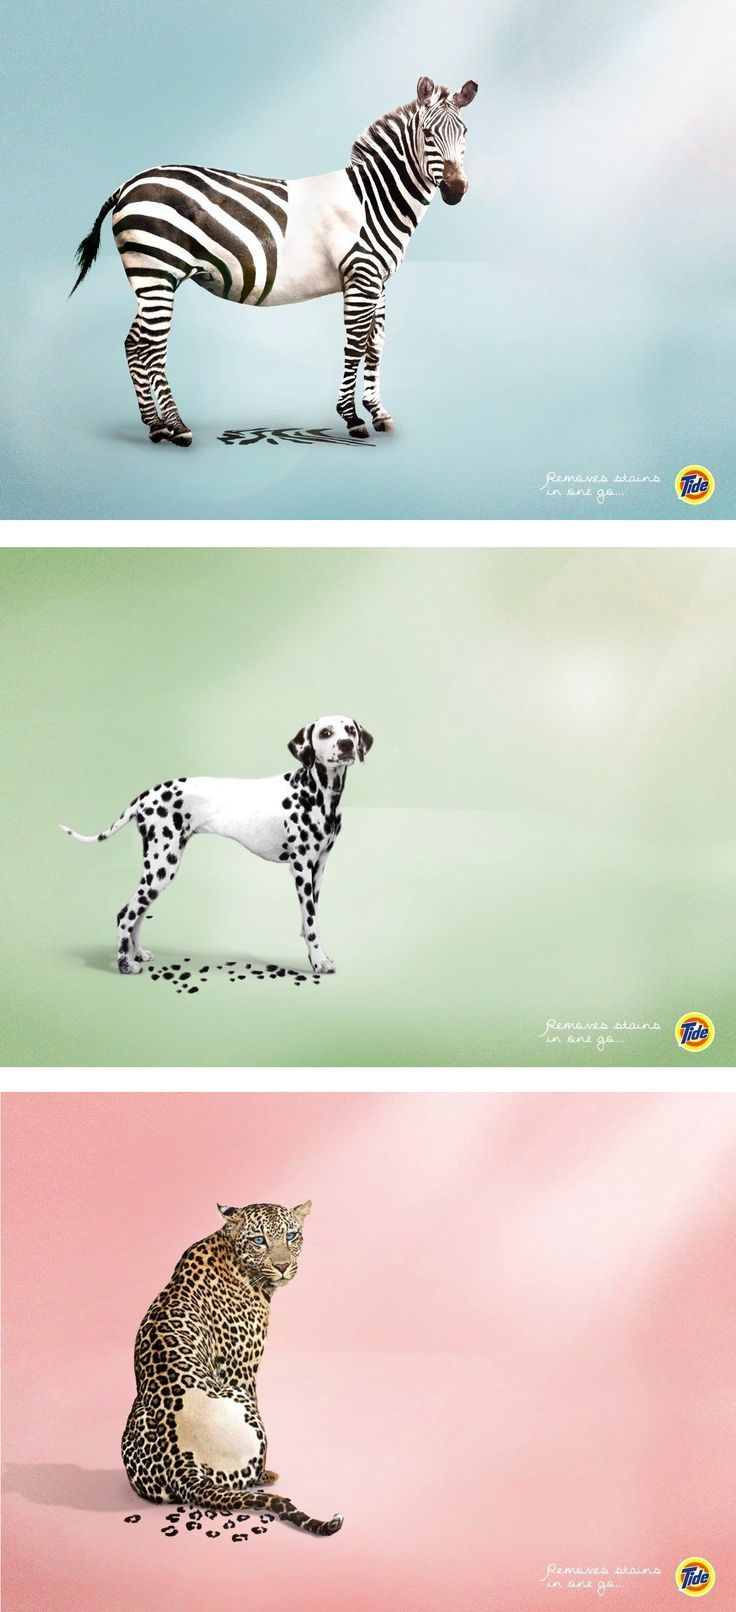 creative ads. check out http://arcreaction.com or more awesome stuff